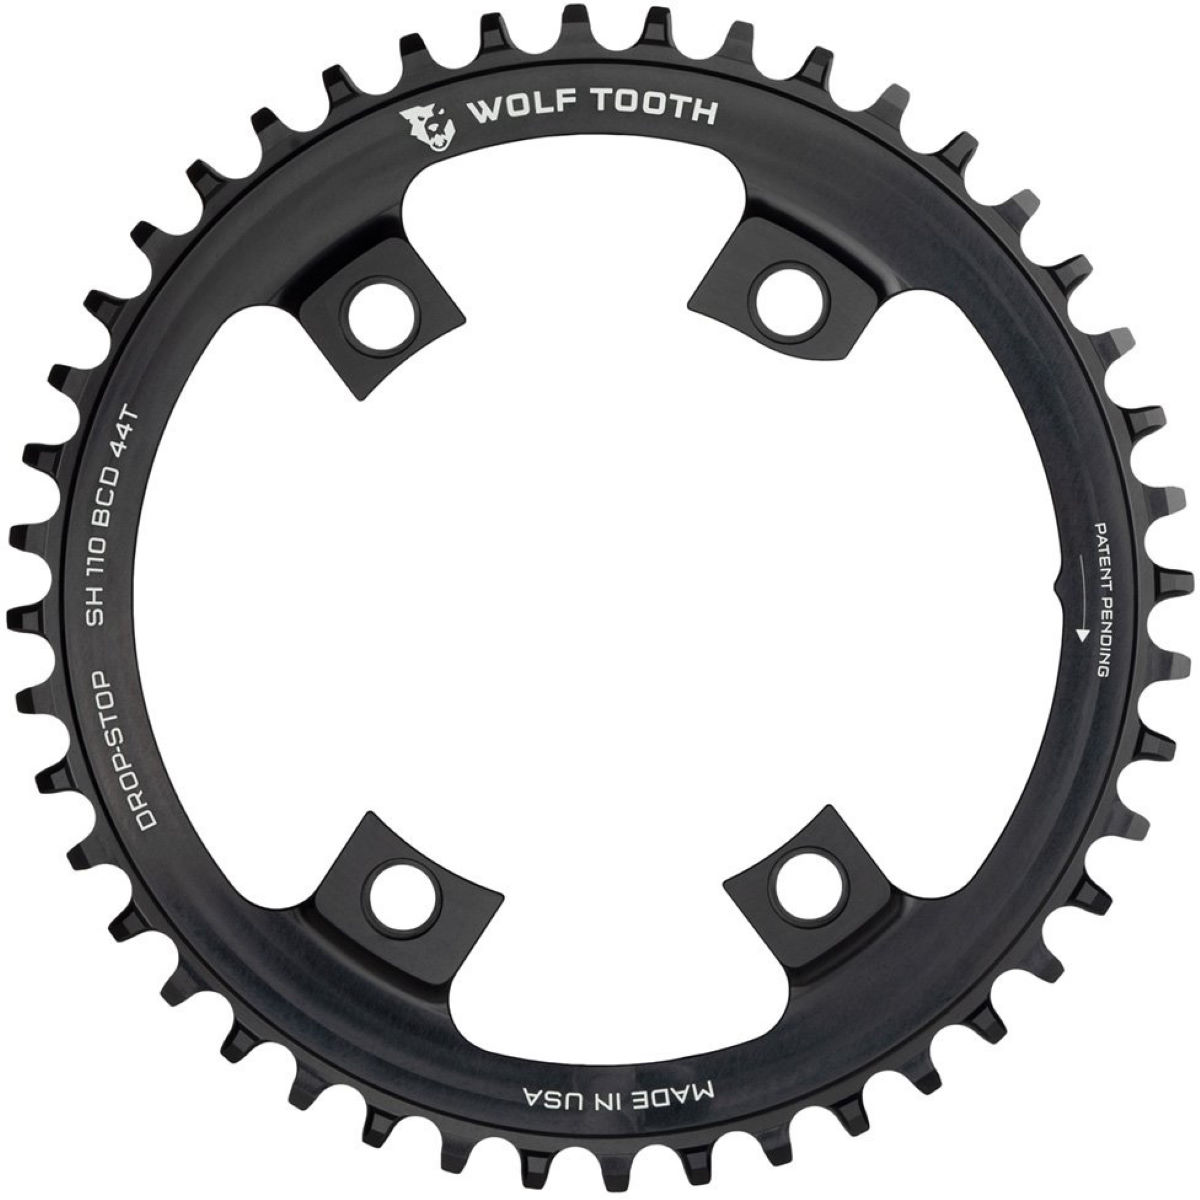 Wolf Tooth Wolf Tooth 110 BCD Chainring   Chain Rings